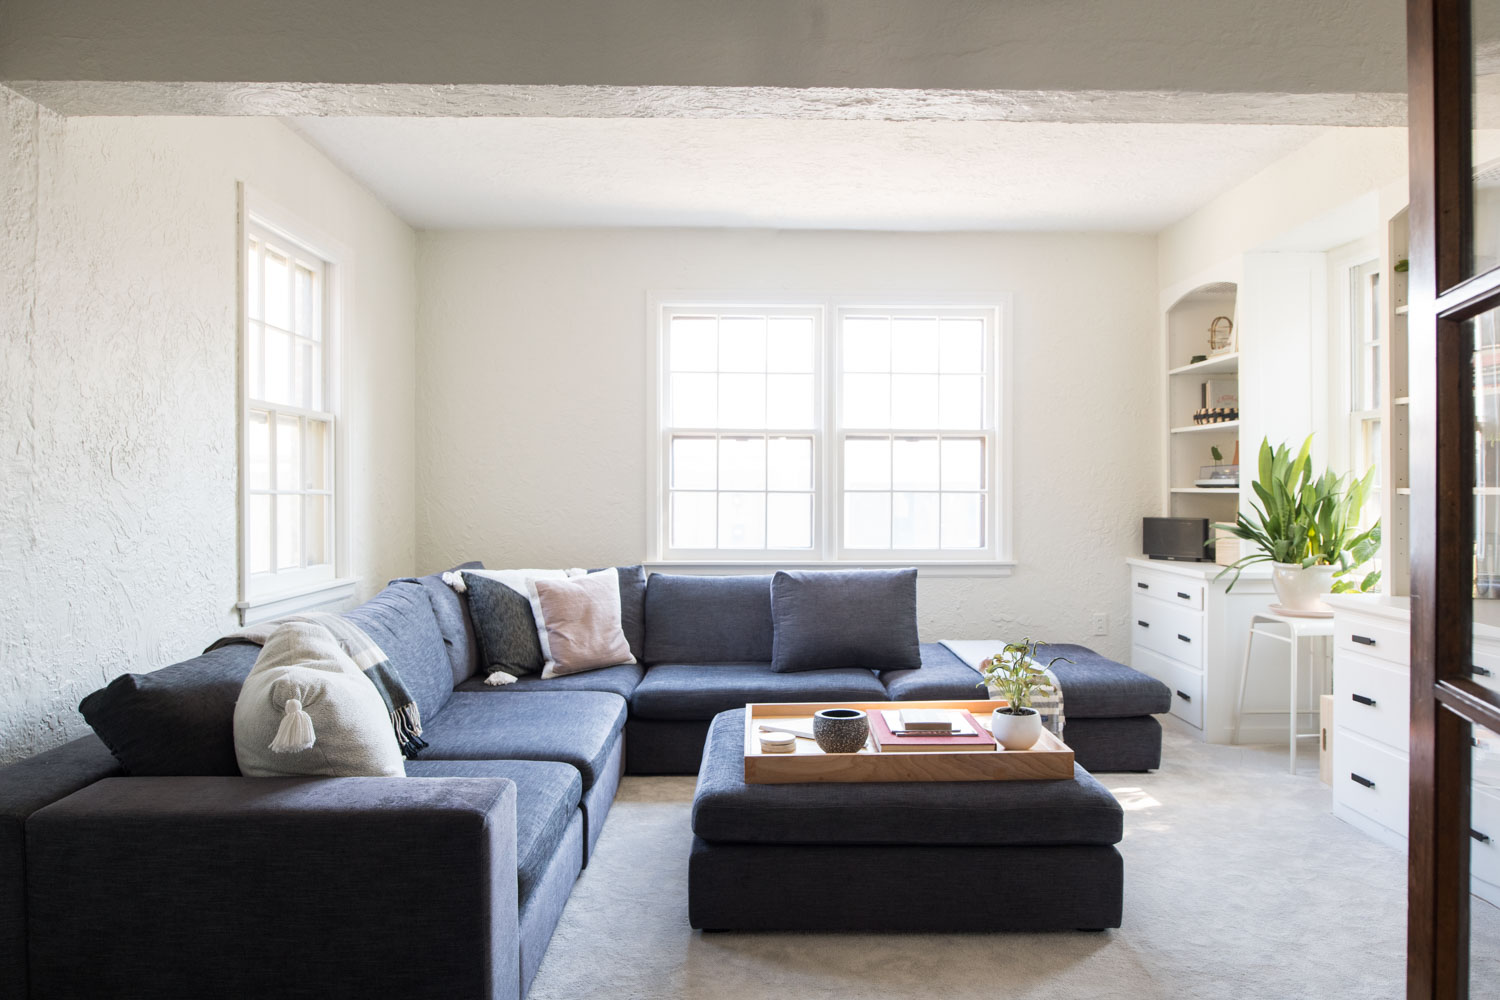 The Revolving Room and Calling it Good Enough   Design*Sponge